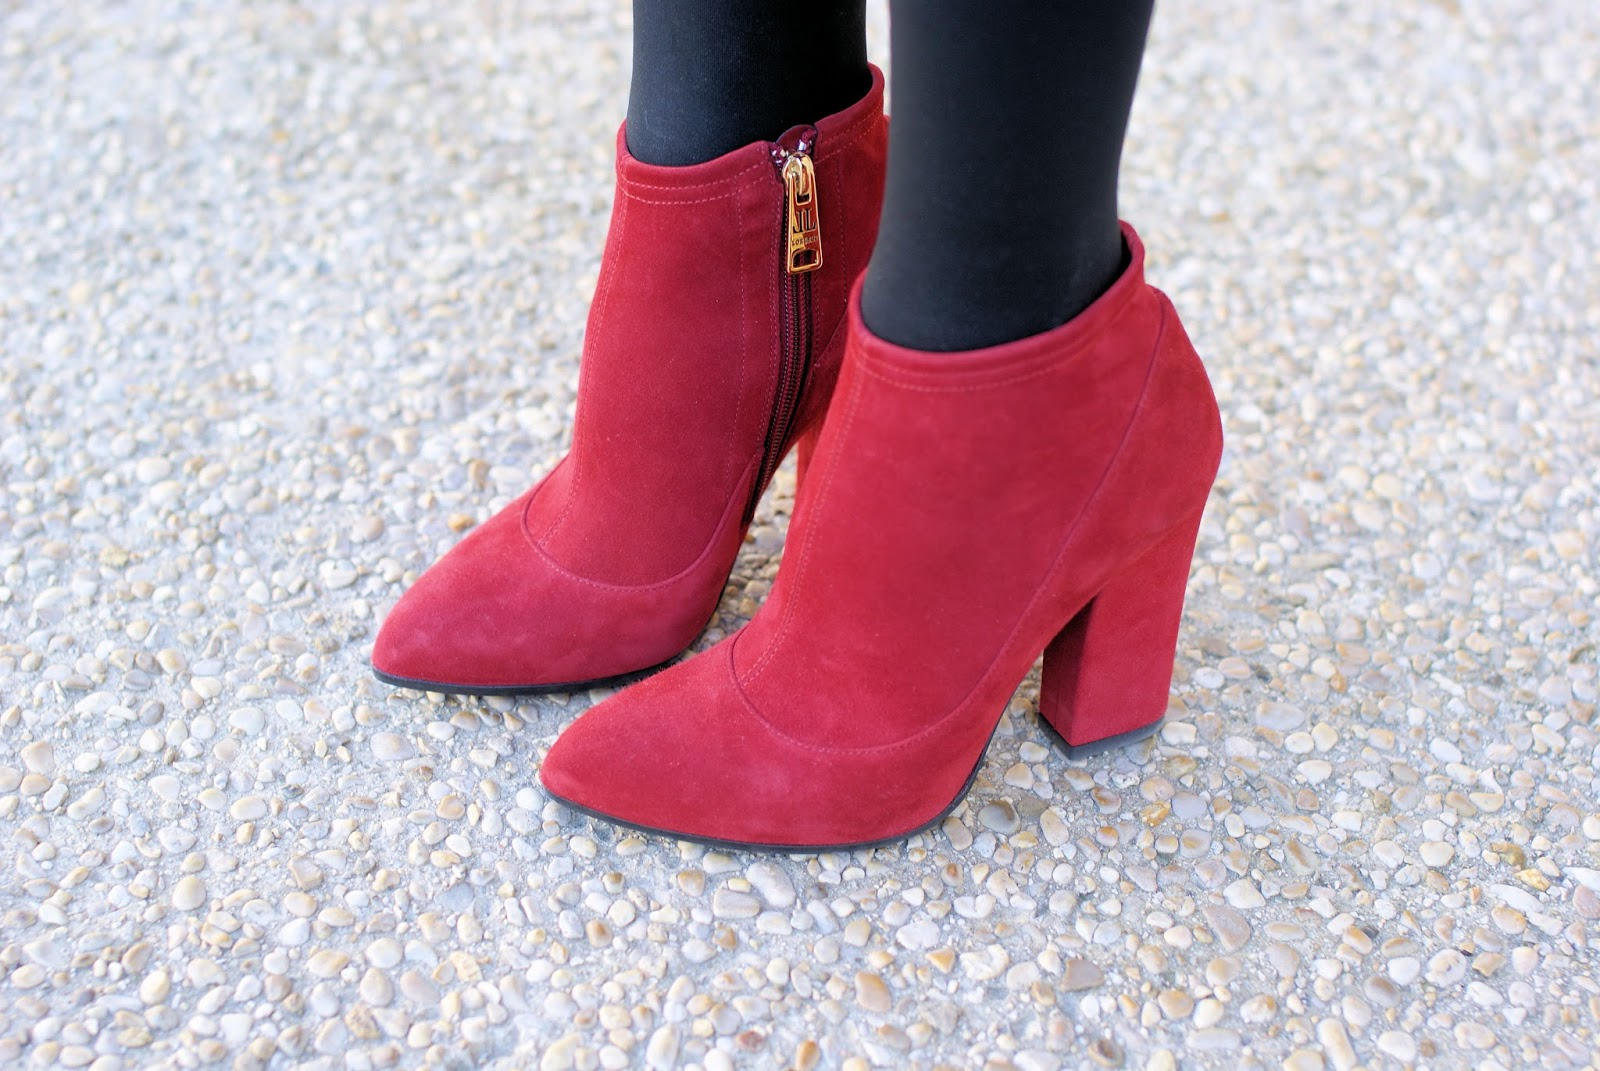 Loriblu heels on Fashion and Cookies fashion blog, fashion blogger style